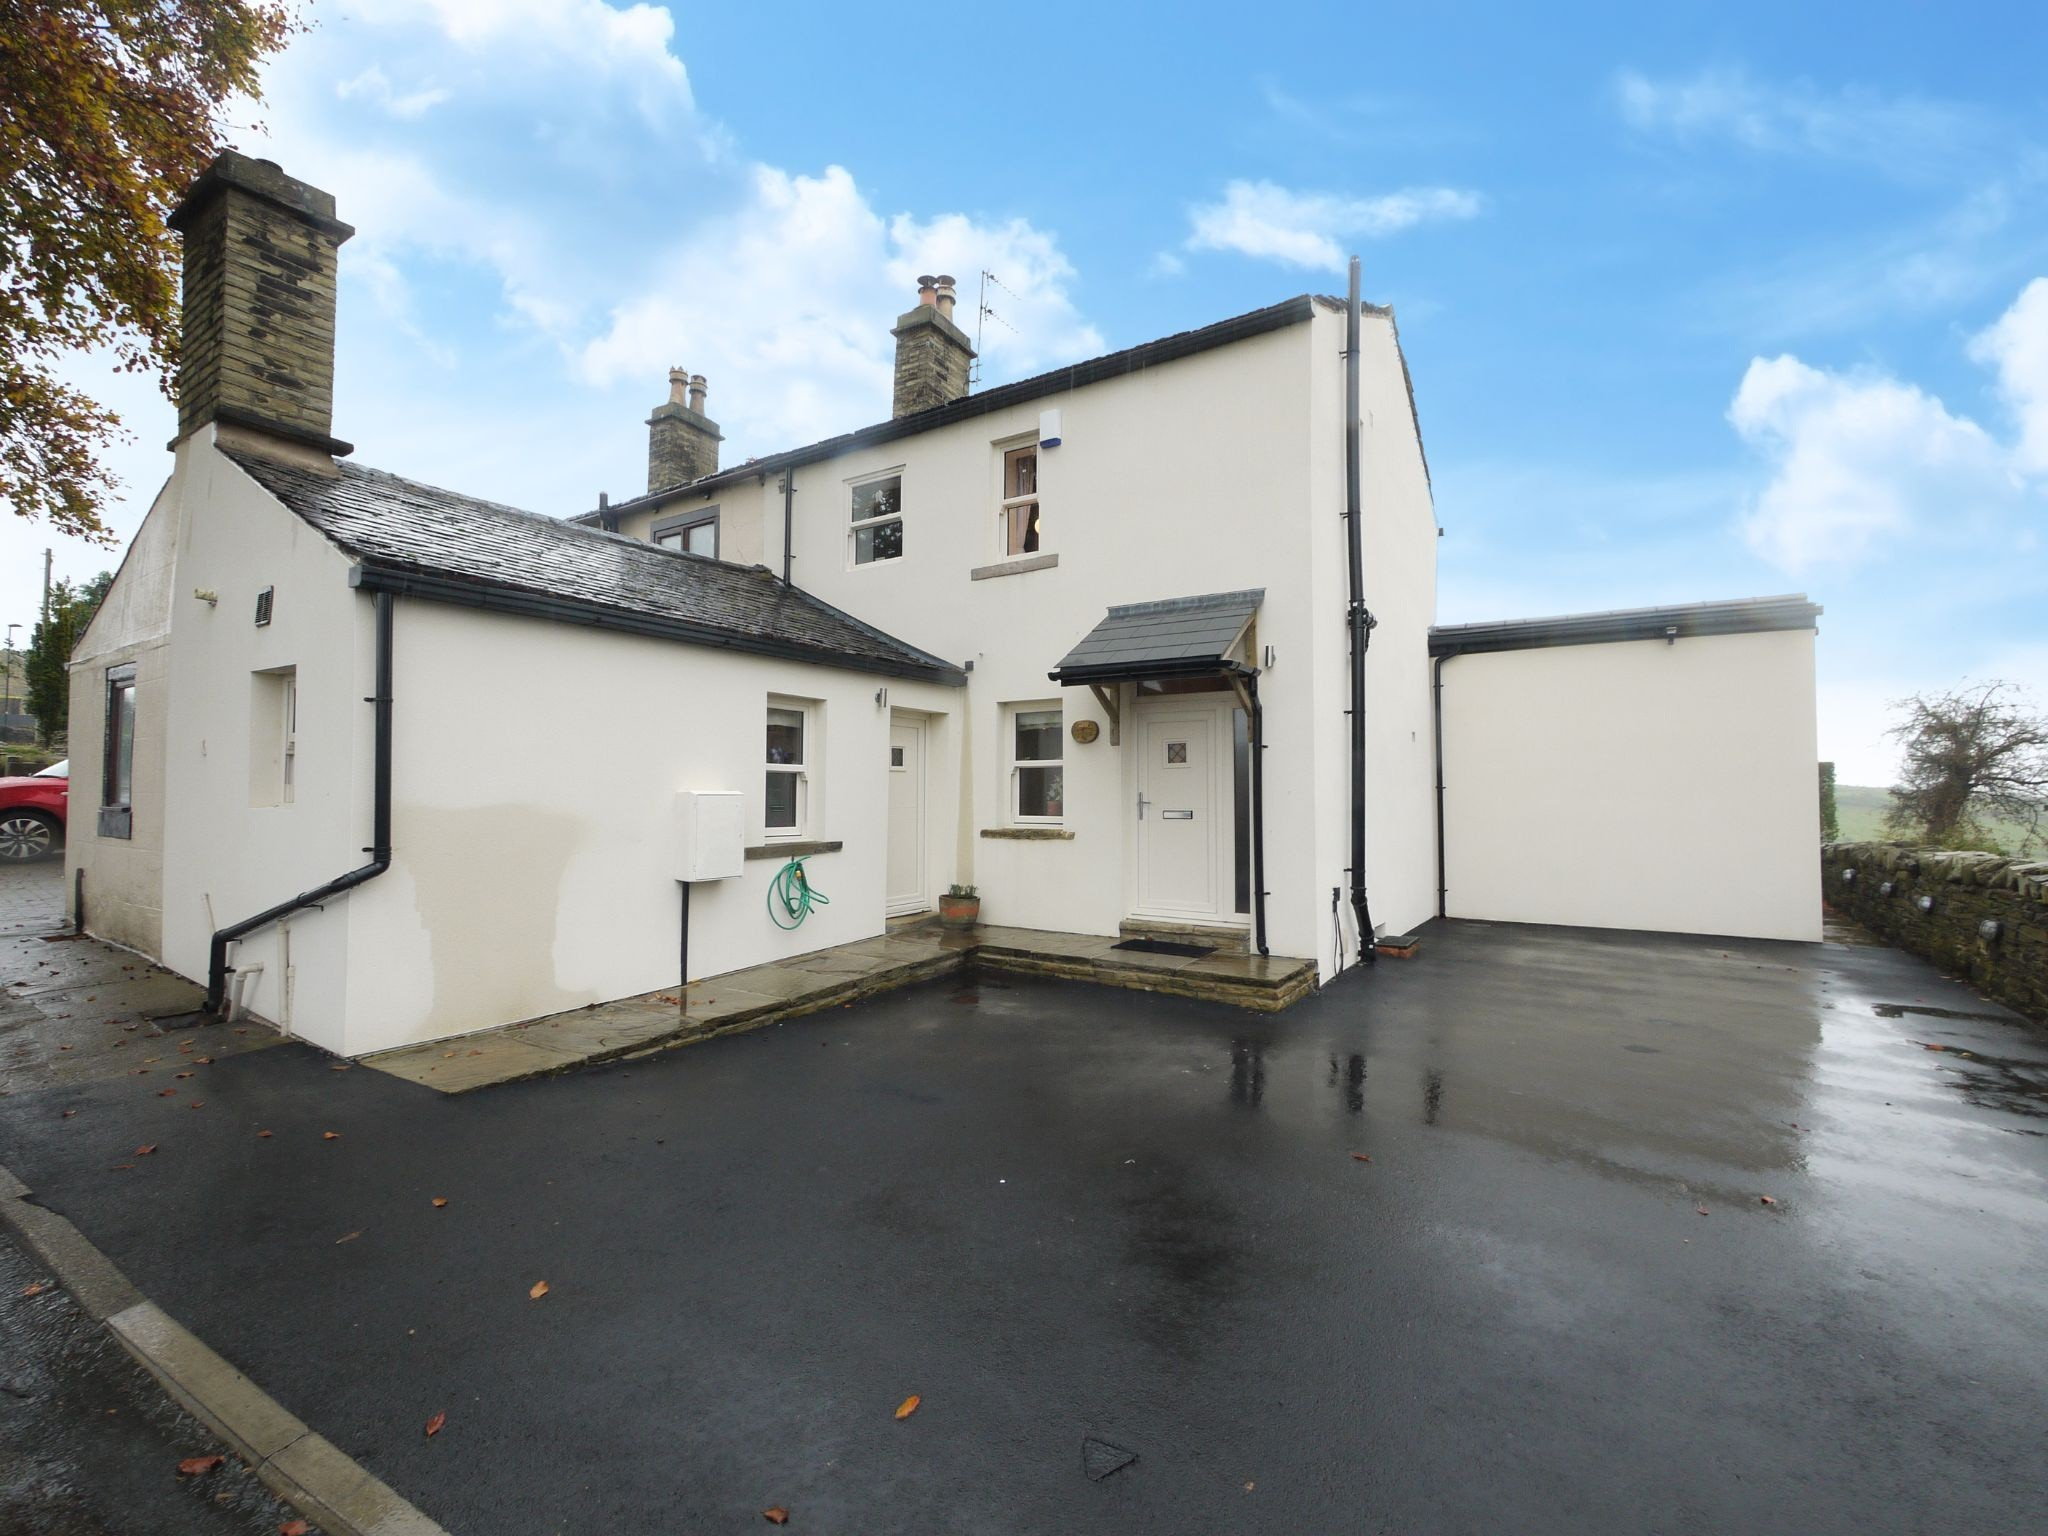 3 bedroom semi-detached house For Sale in Bradford - Photograph 2.